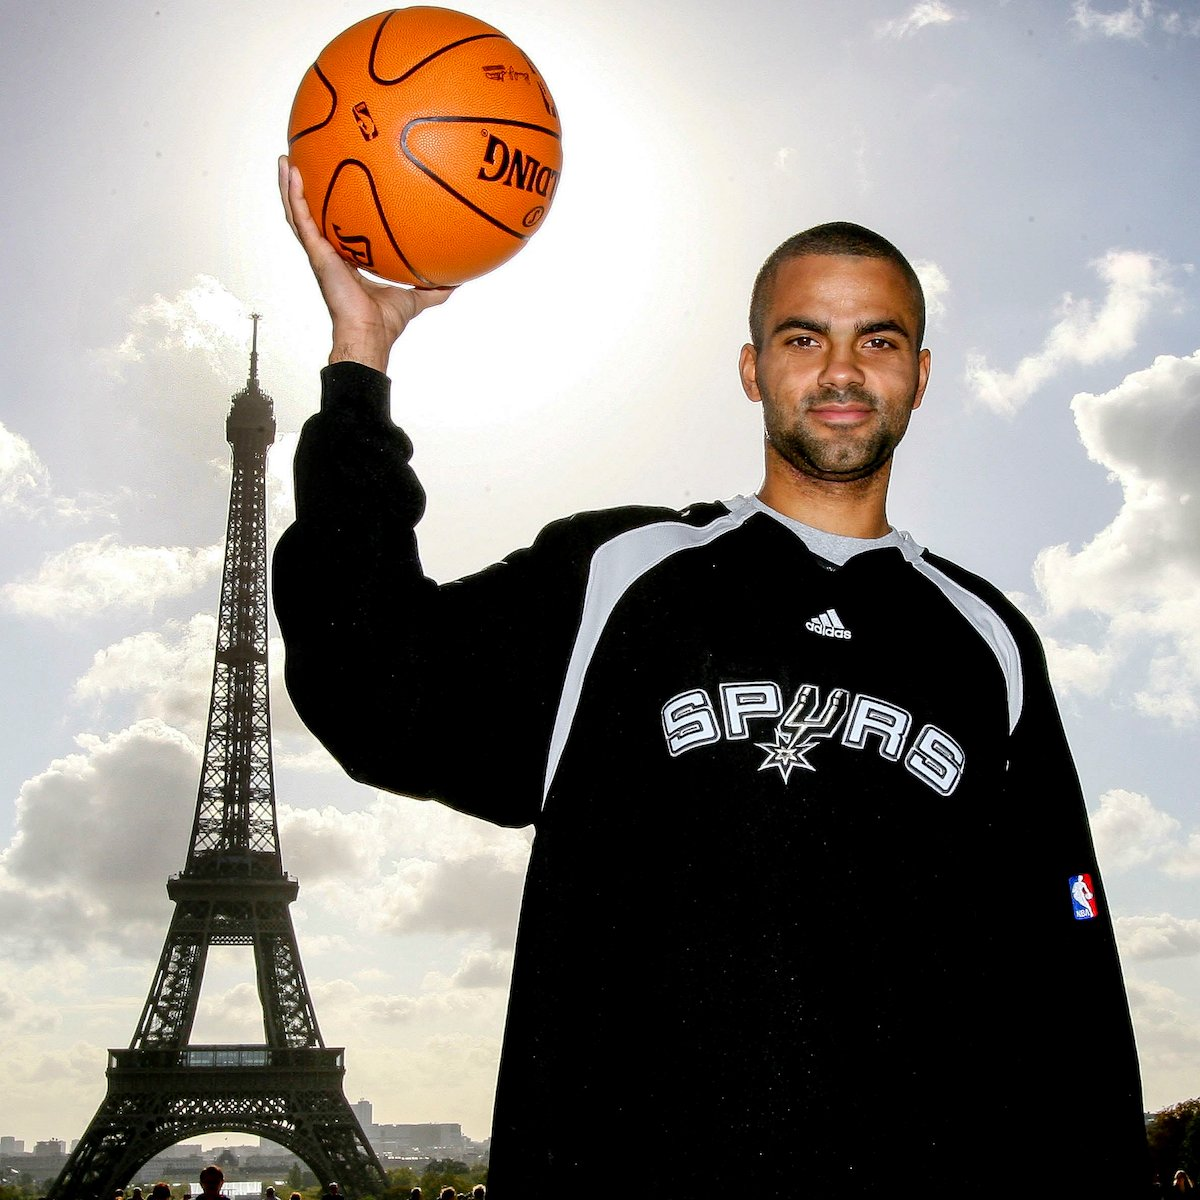 Tony Parker will become the tenth player in Spurs history to have his number retired. He joins: Bruce Bowen (12) Tim Duncan (21) Sean Elliott (32) Manu Ginobili (20) George Gervin (44) Avery Johnson (6) Johnny Moore (00) David Robinson (50) James Silas (13) #MerciTP